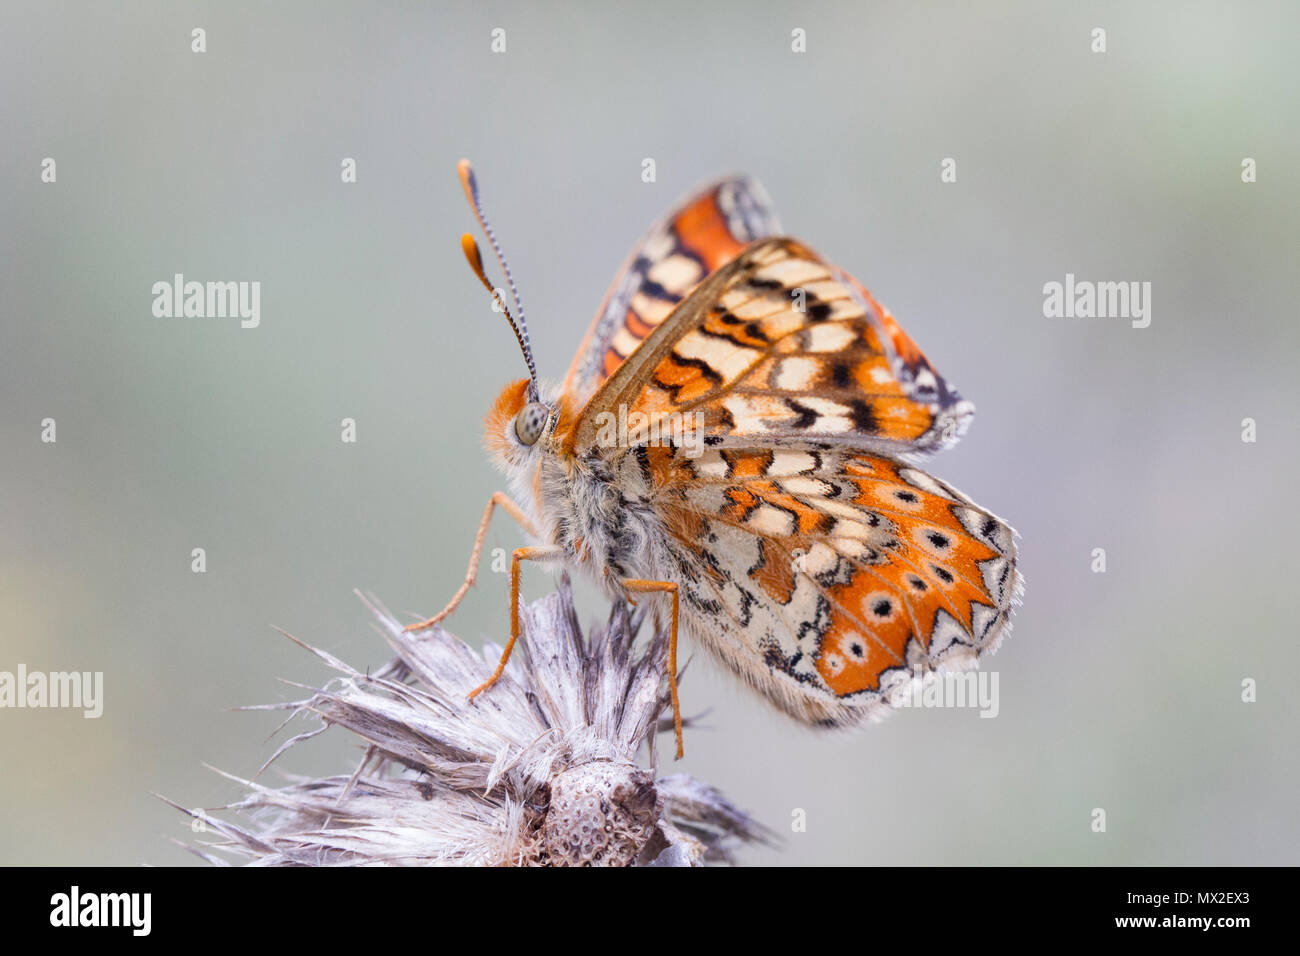 Butterfly {Euphydryas desfontainii) - Stock Image